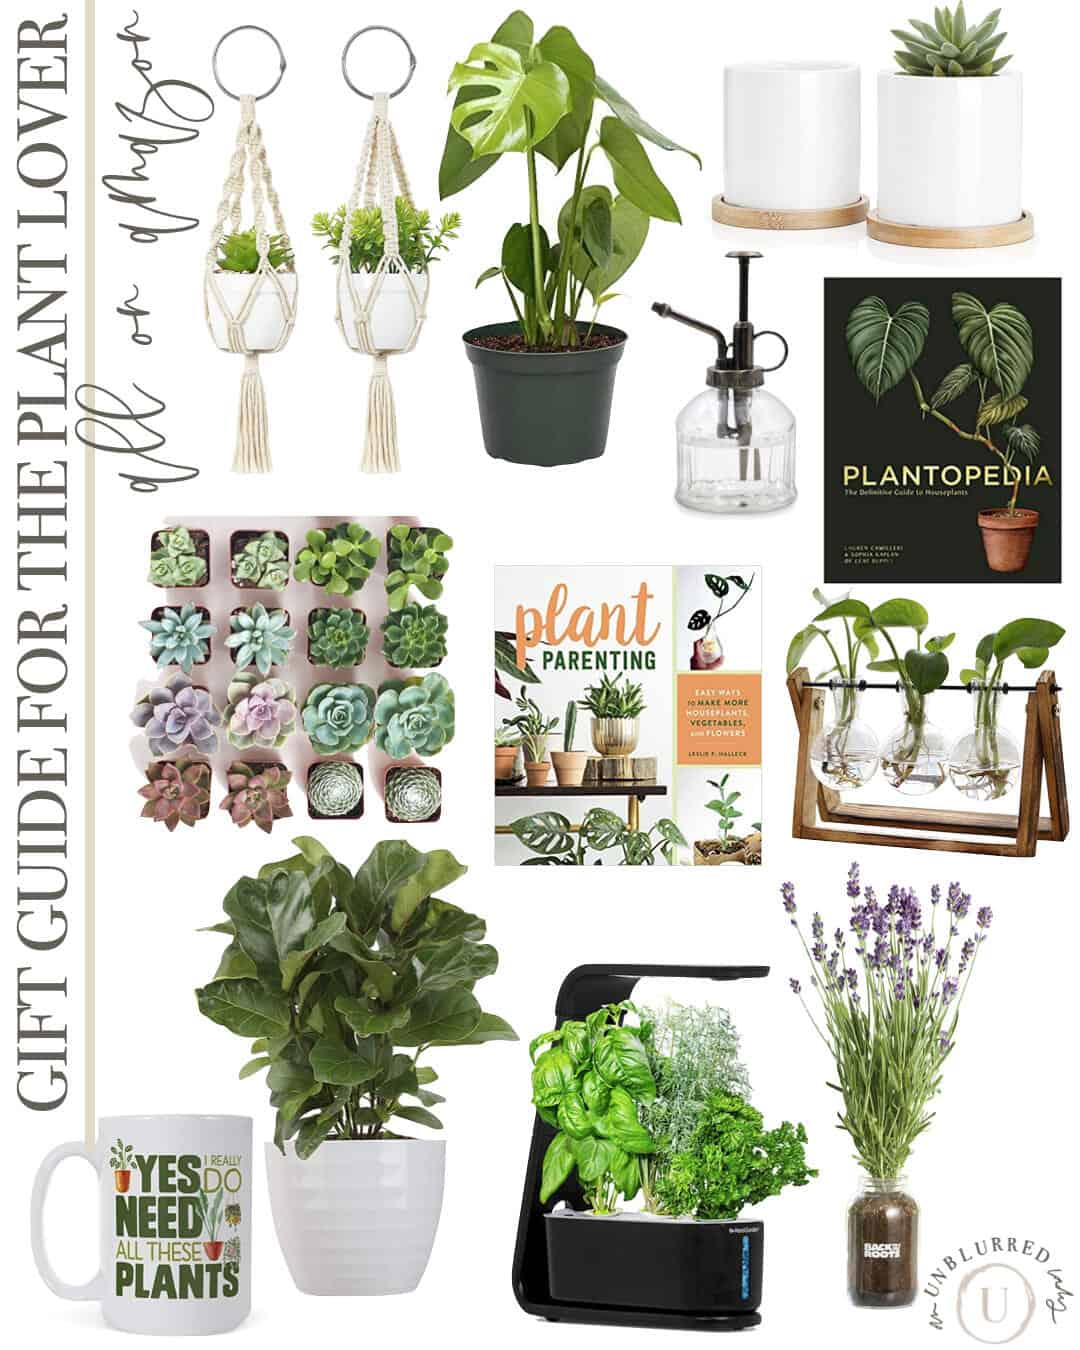 Gift Guide for the Plant Lover on Amazon